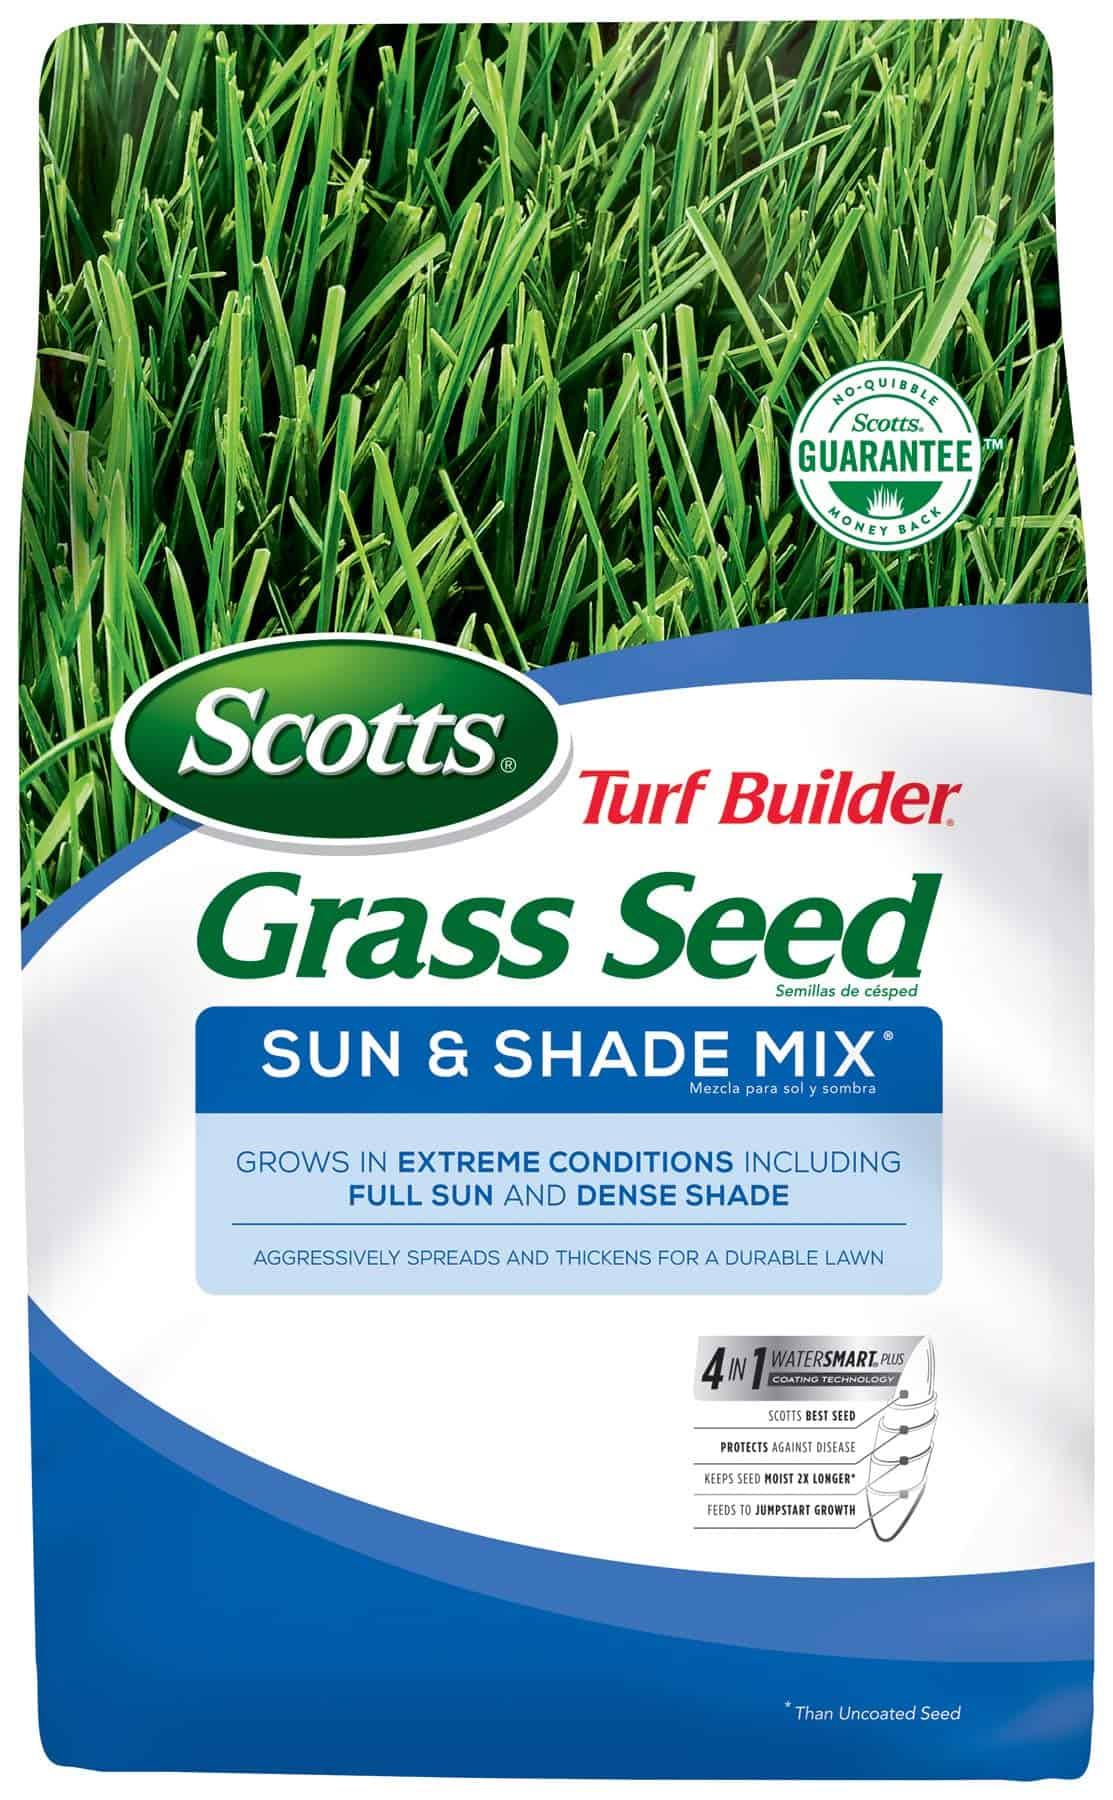 Scotts Turf Builder Grass Seed Sun and Shade Mix - Best grass seed for extreme heat